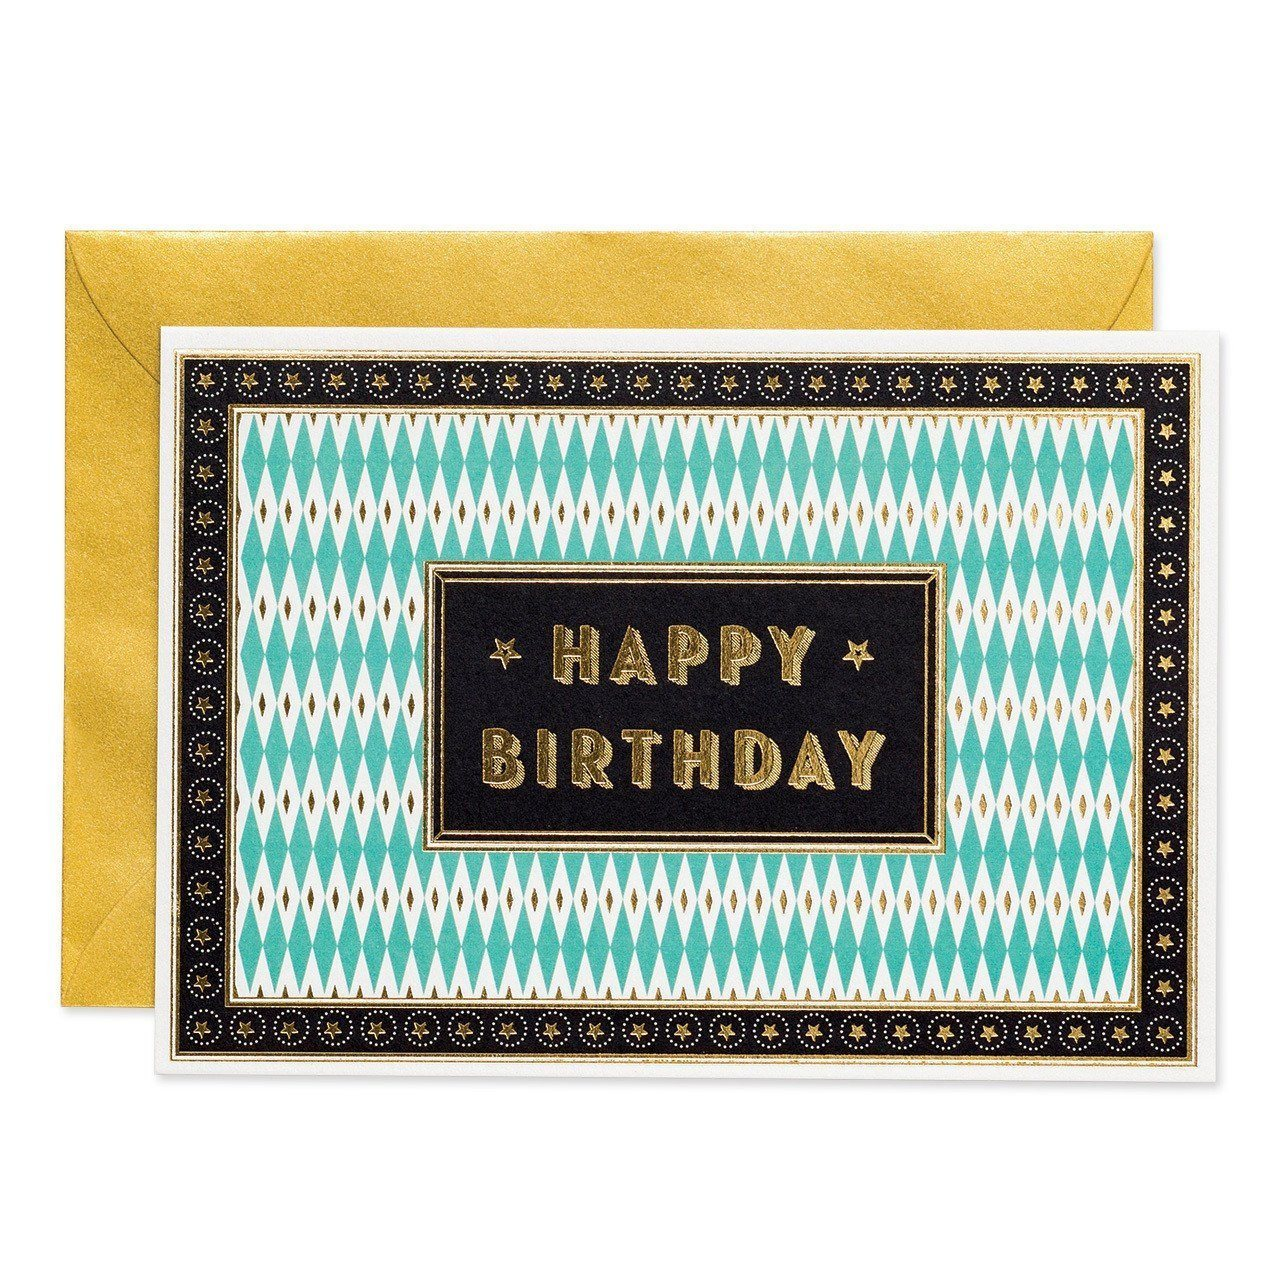 Happy Birthday - Art Deco